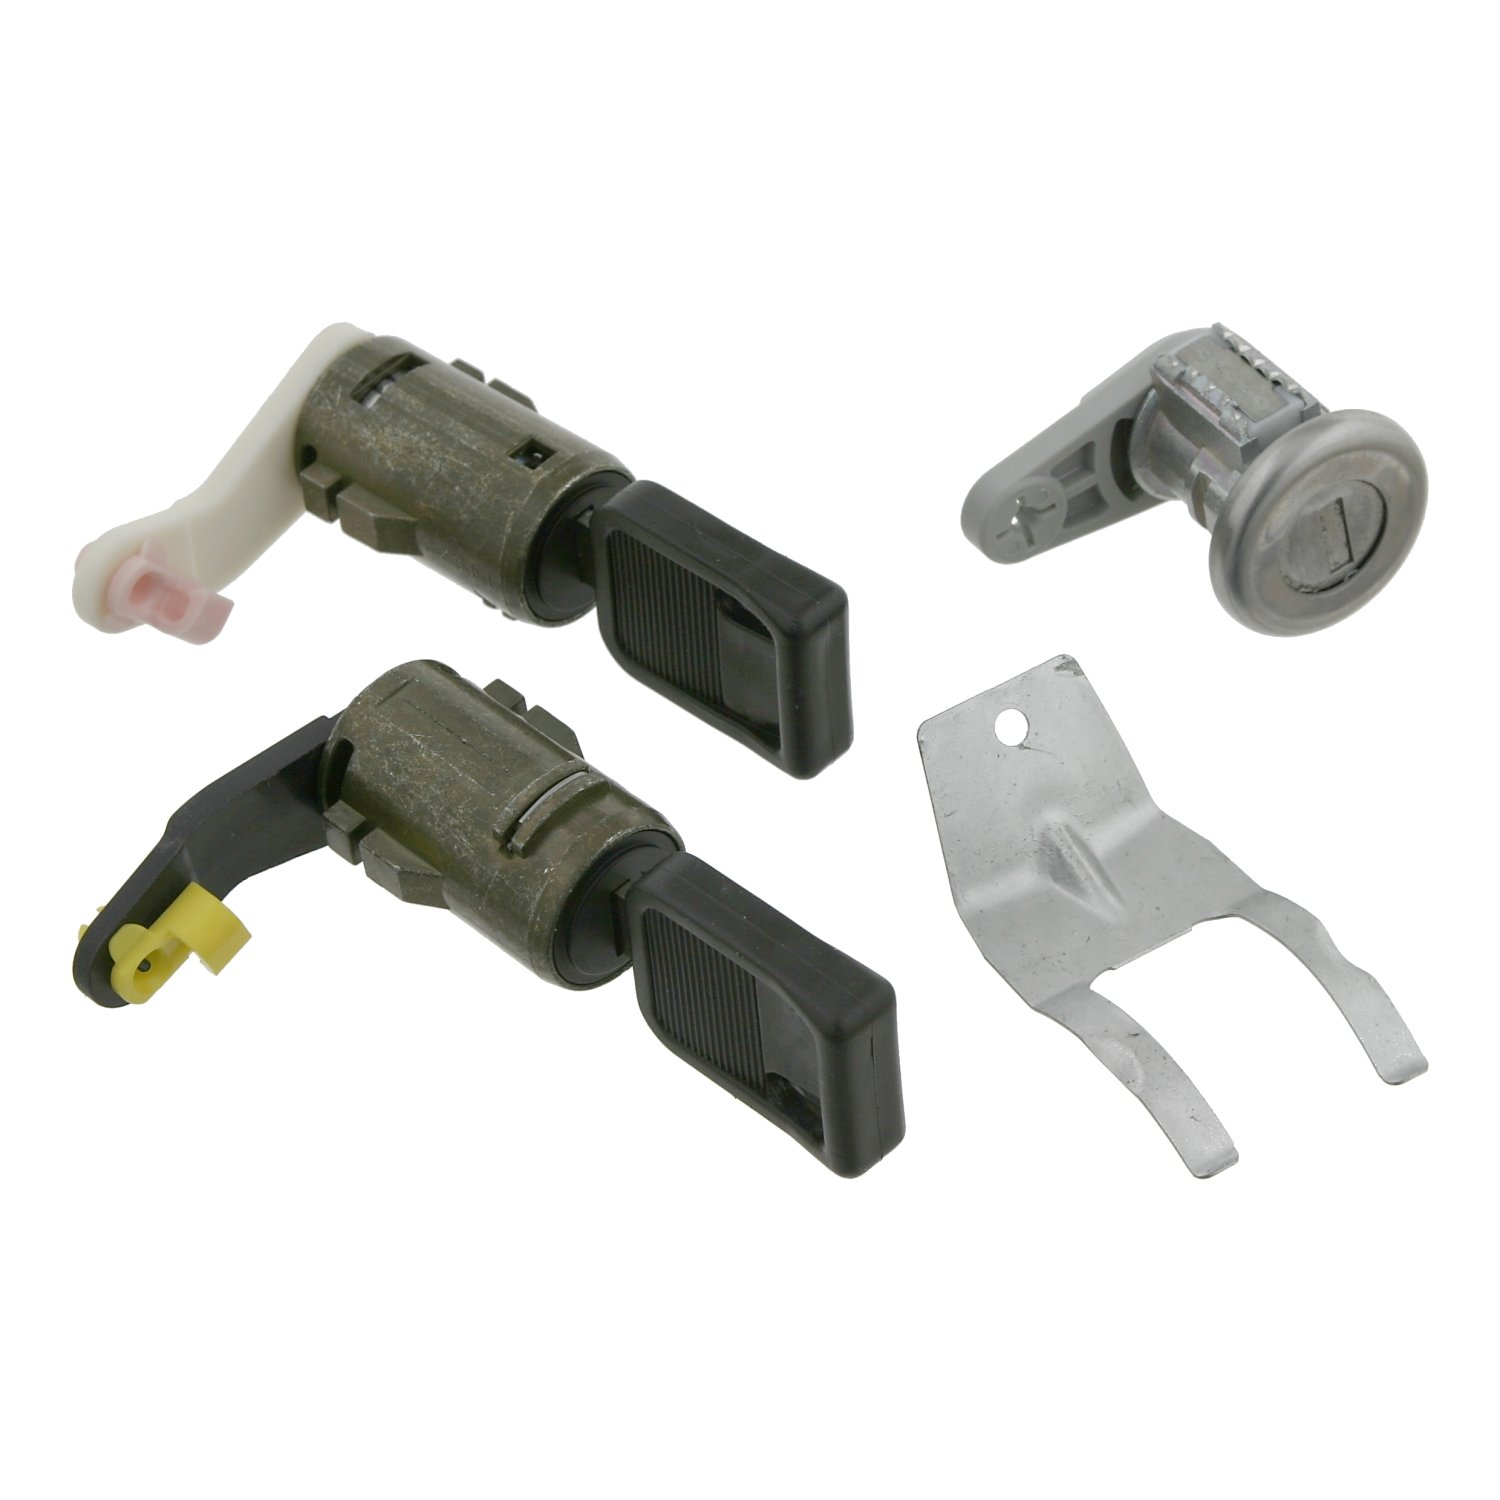 febi bilstein 26878 rep kit closing cylinder with 2 keys Pack of 1